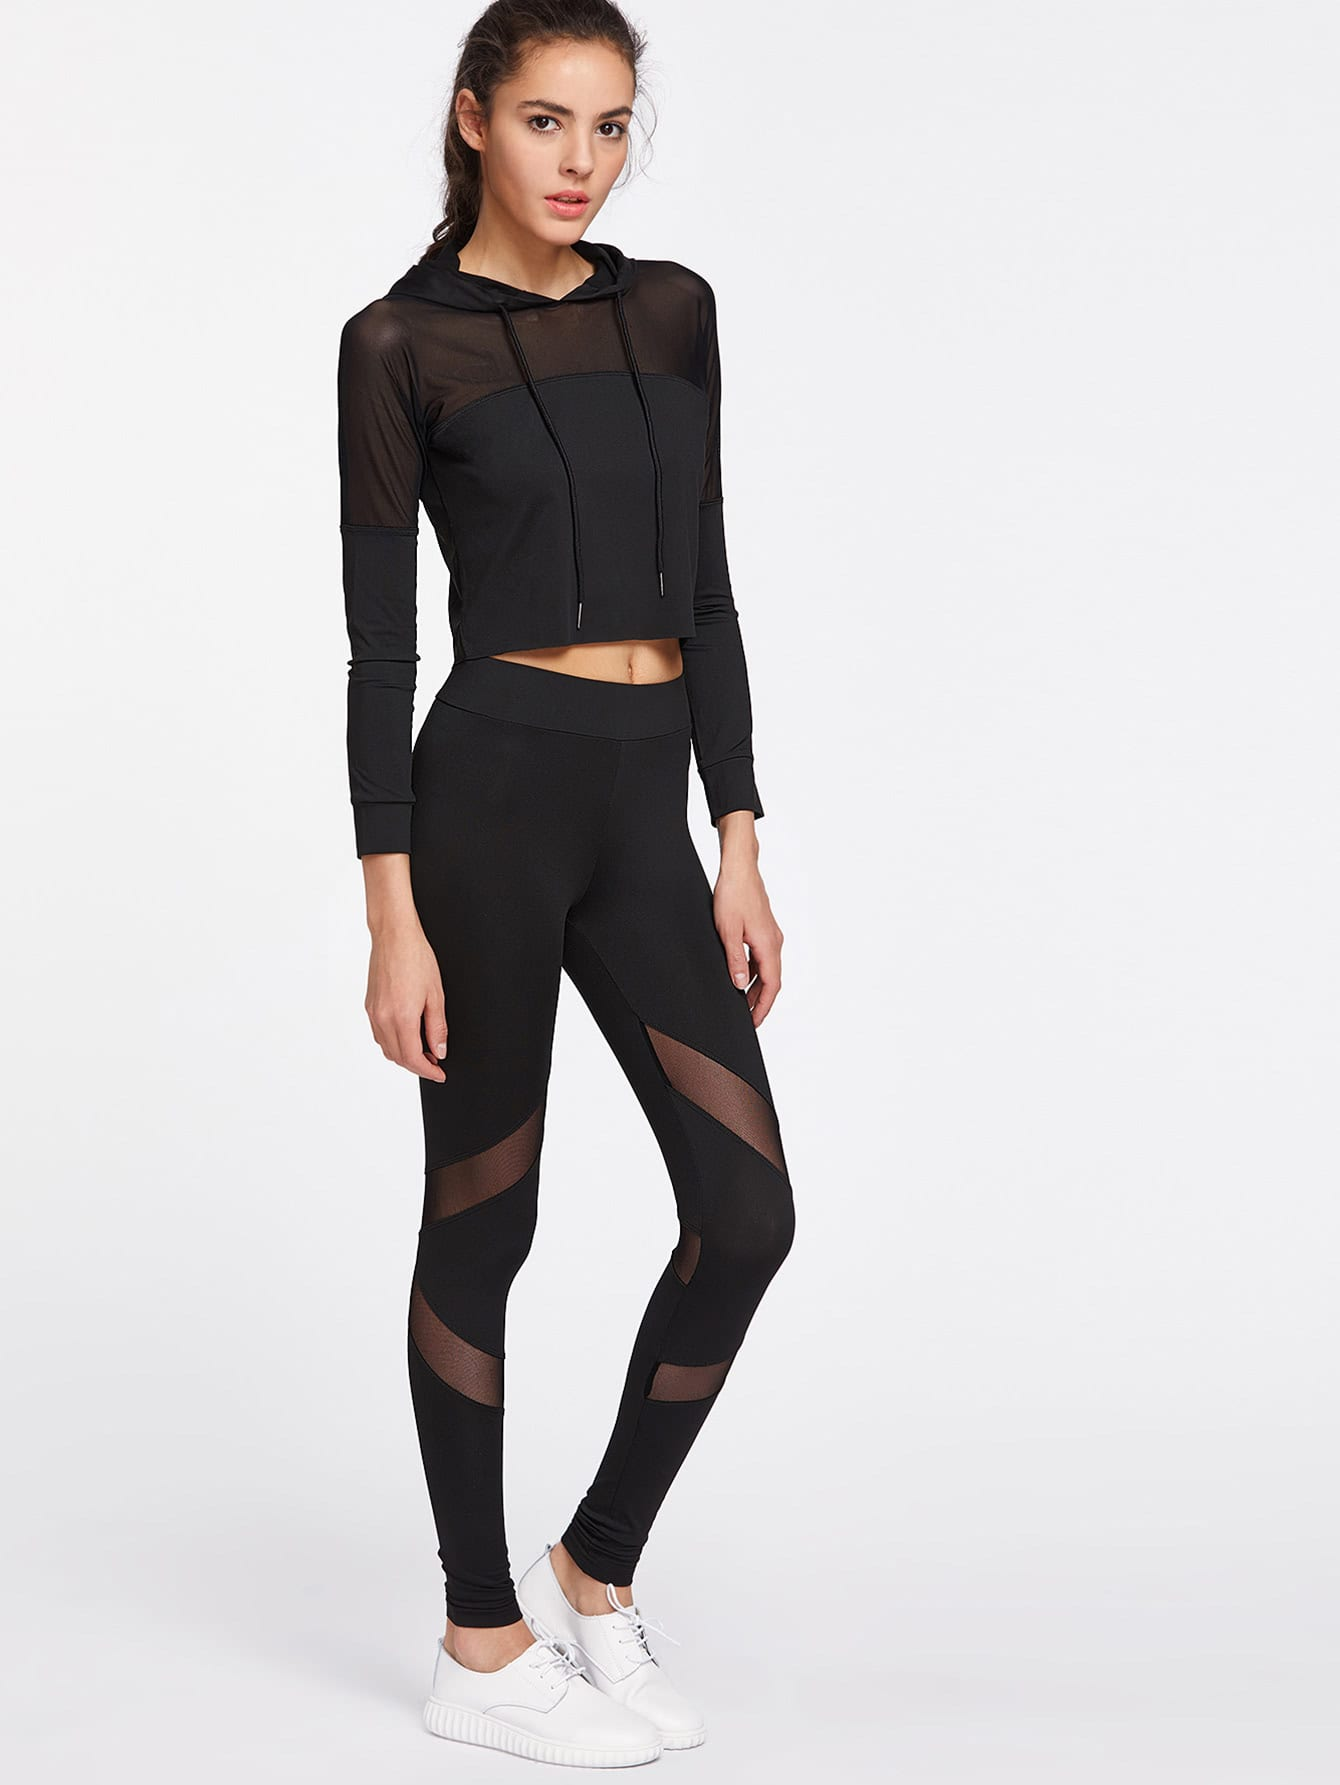 Active Mesh Paneled Hooded Top With Leggings twopiece170403304